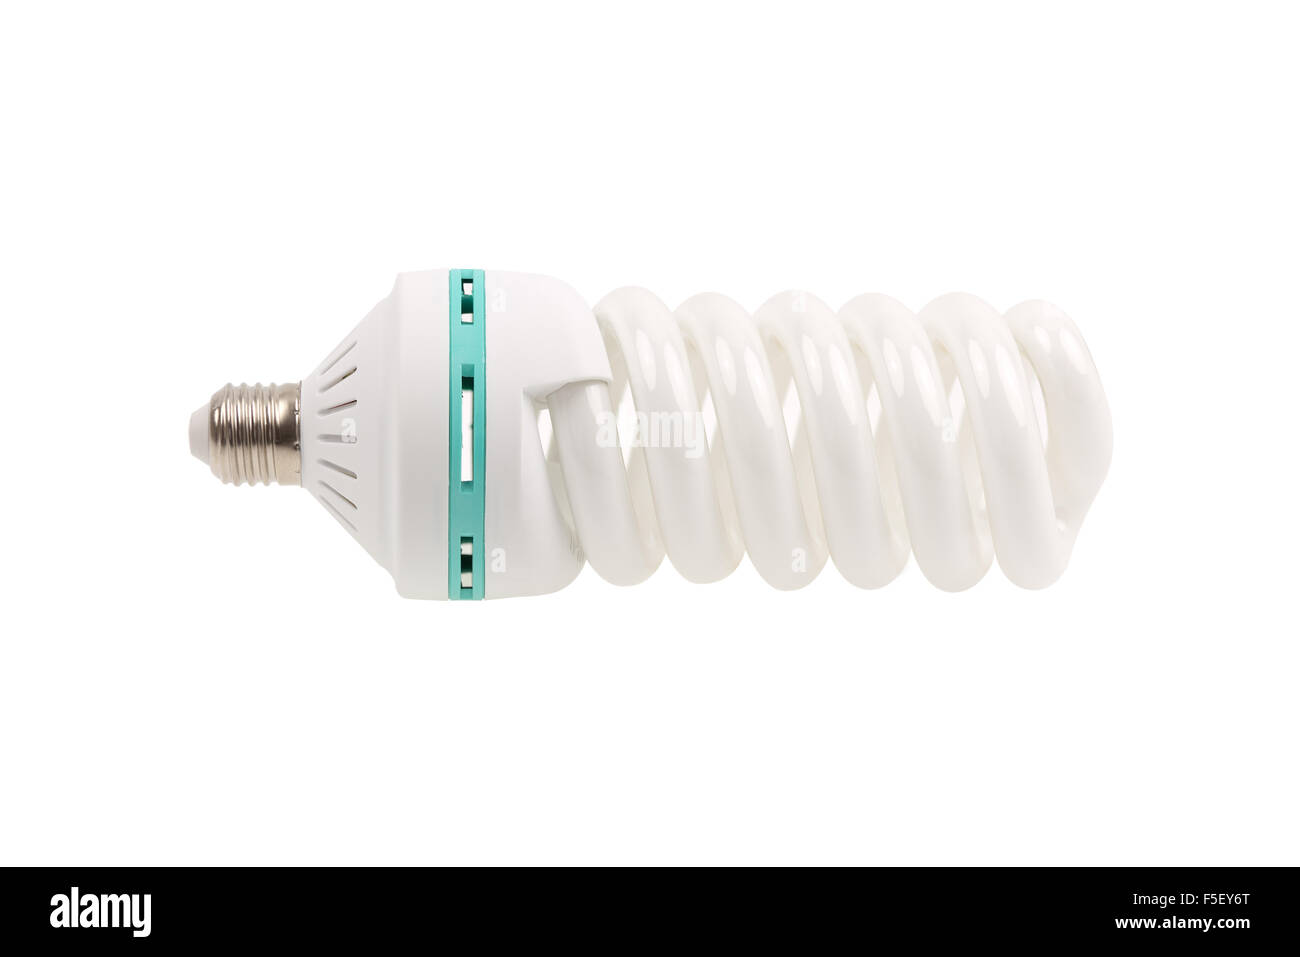 A green light bulb energy saving isolated on white background  A